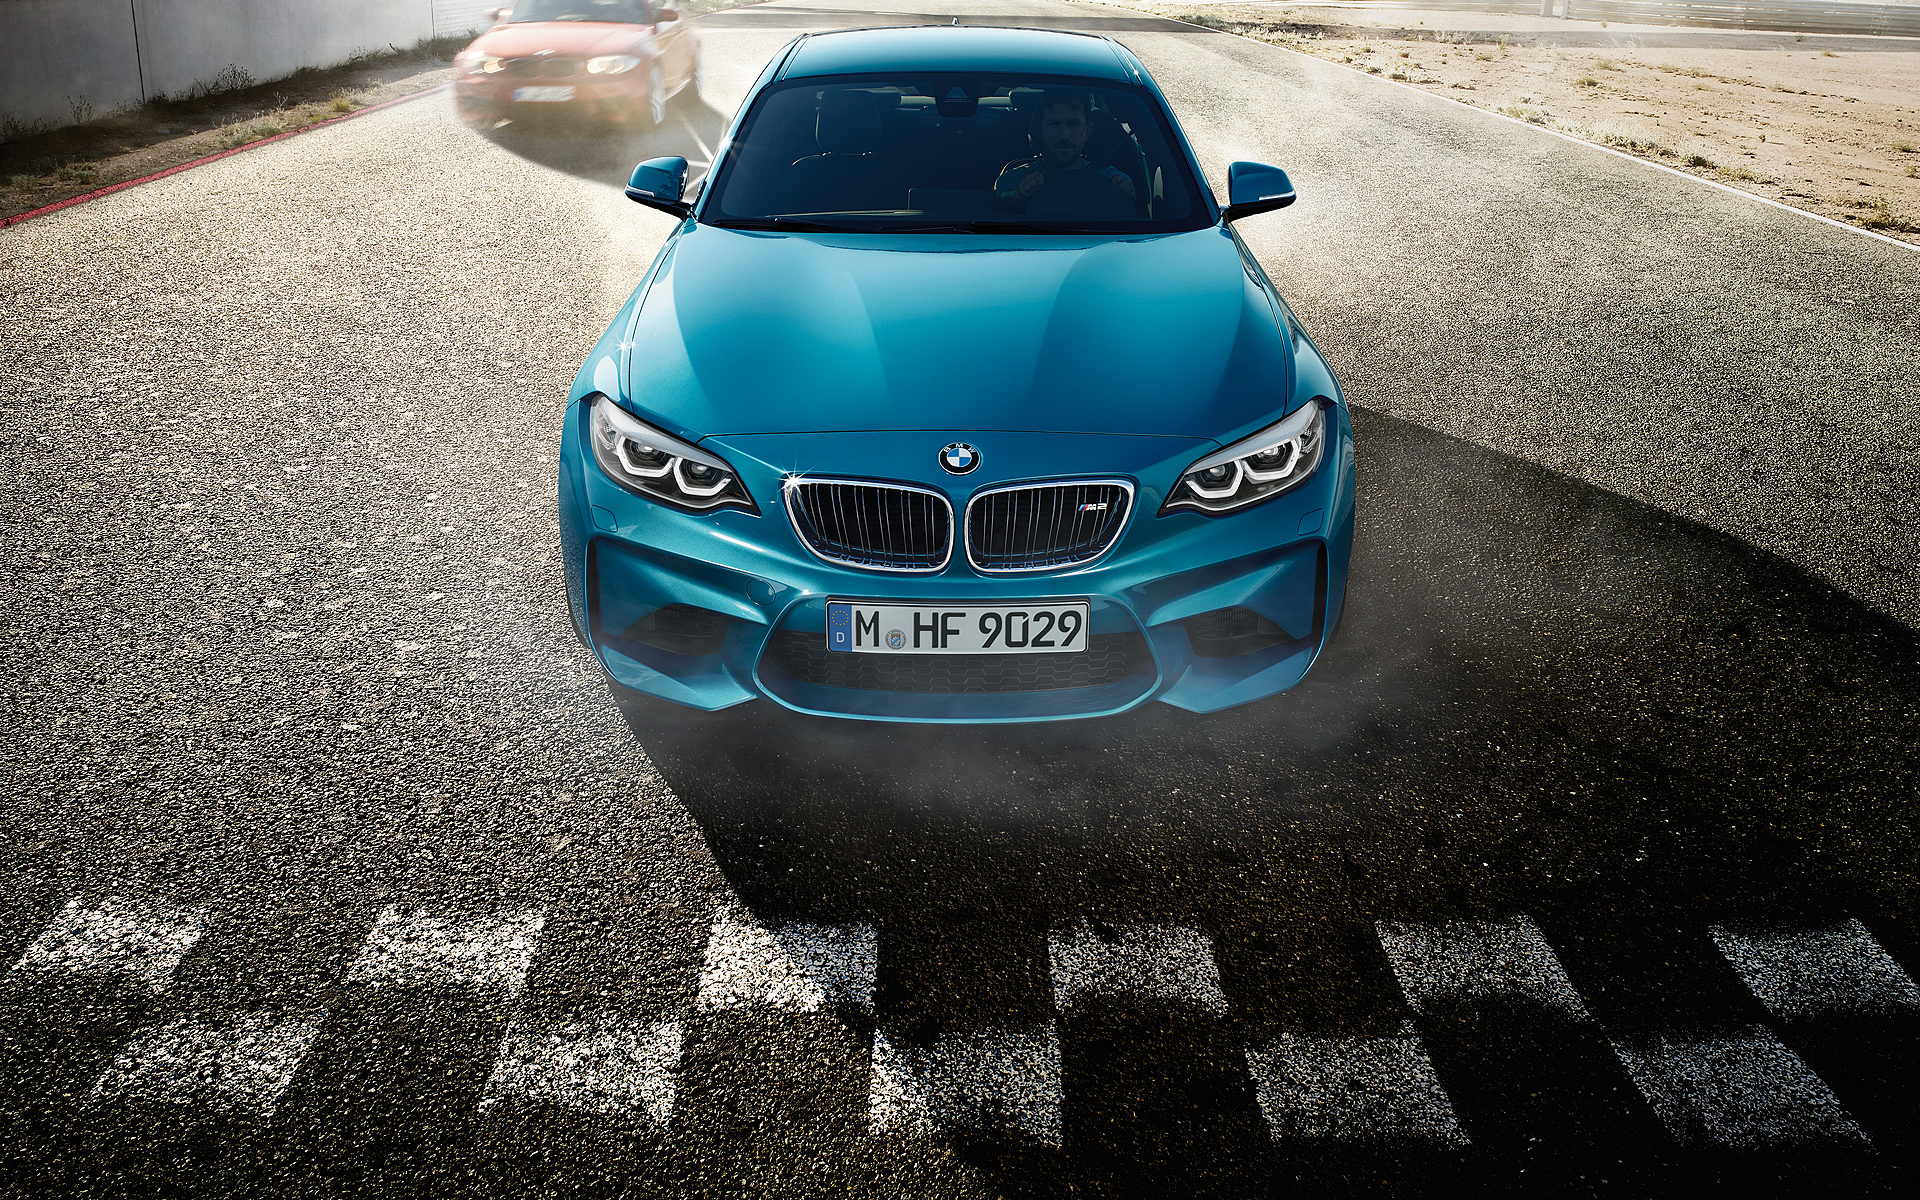 ficial s of BMW M2 LCI Facelift